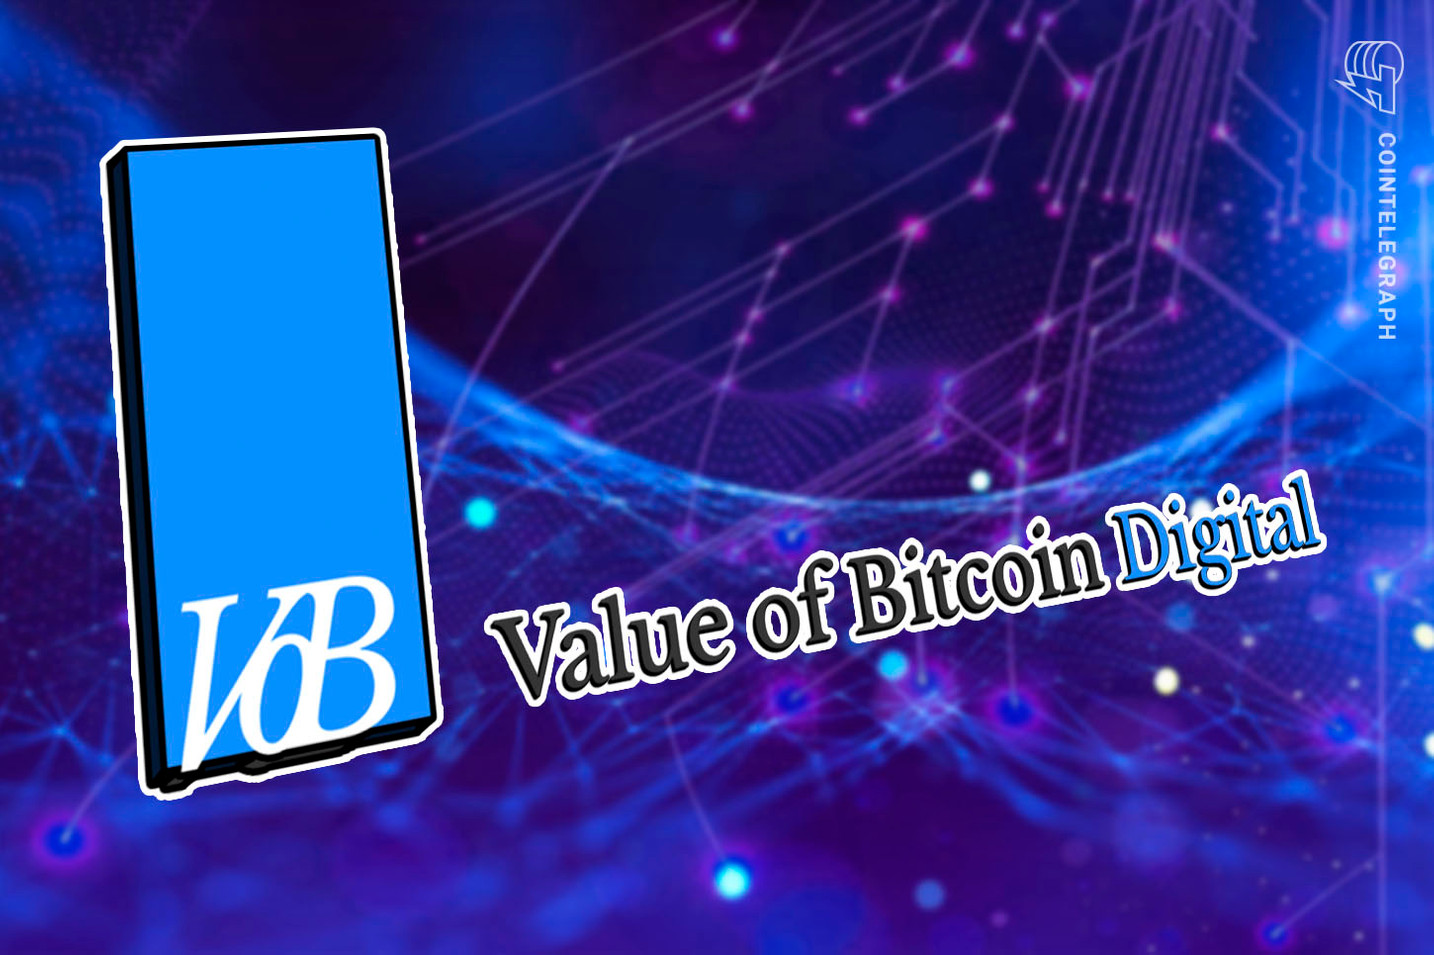 Value of Bitcoin Digital – The Unique Virtual Bitcoin Conference